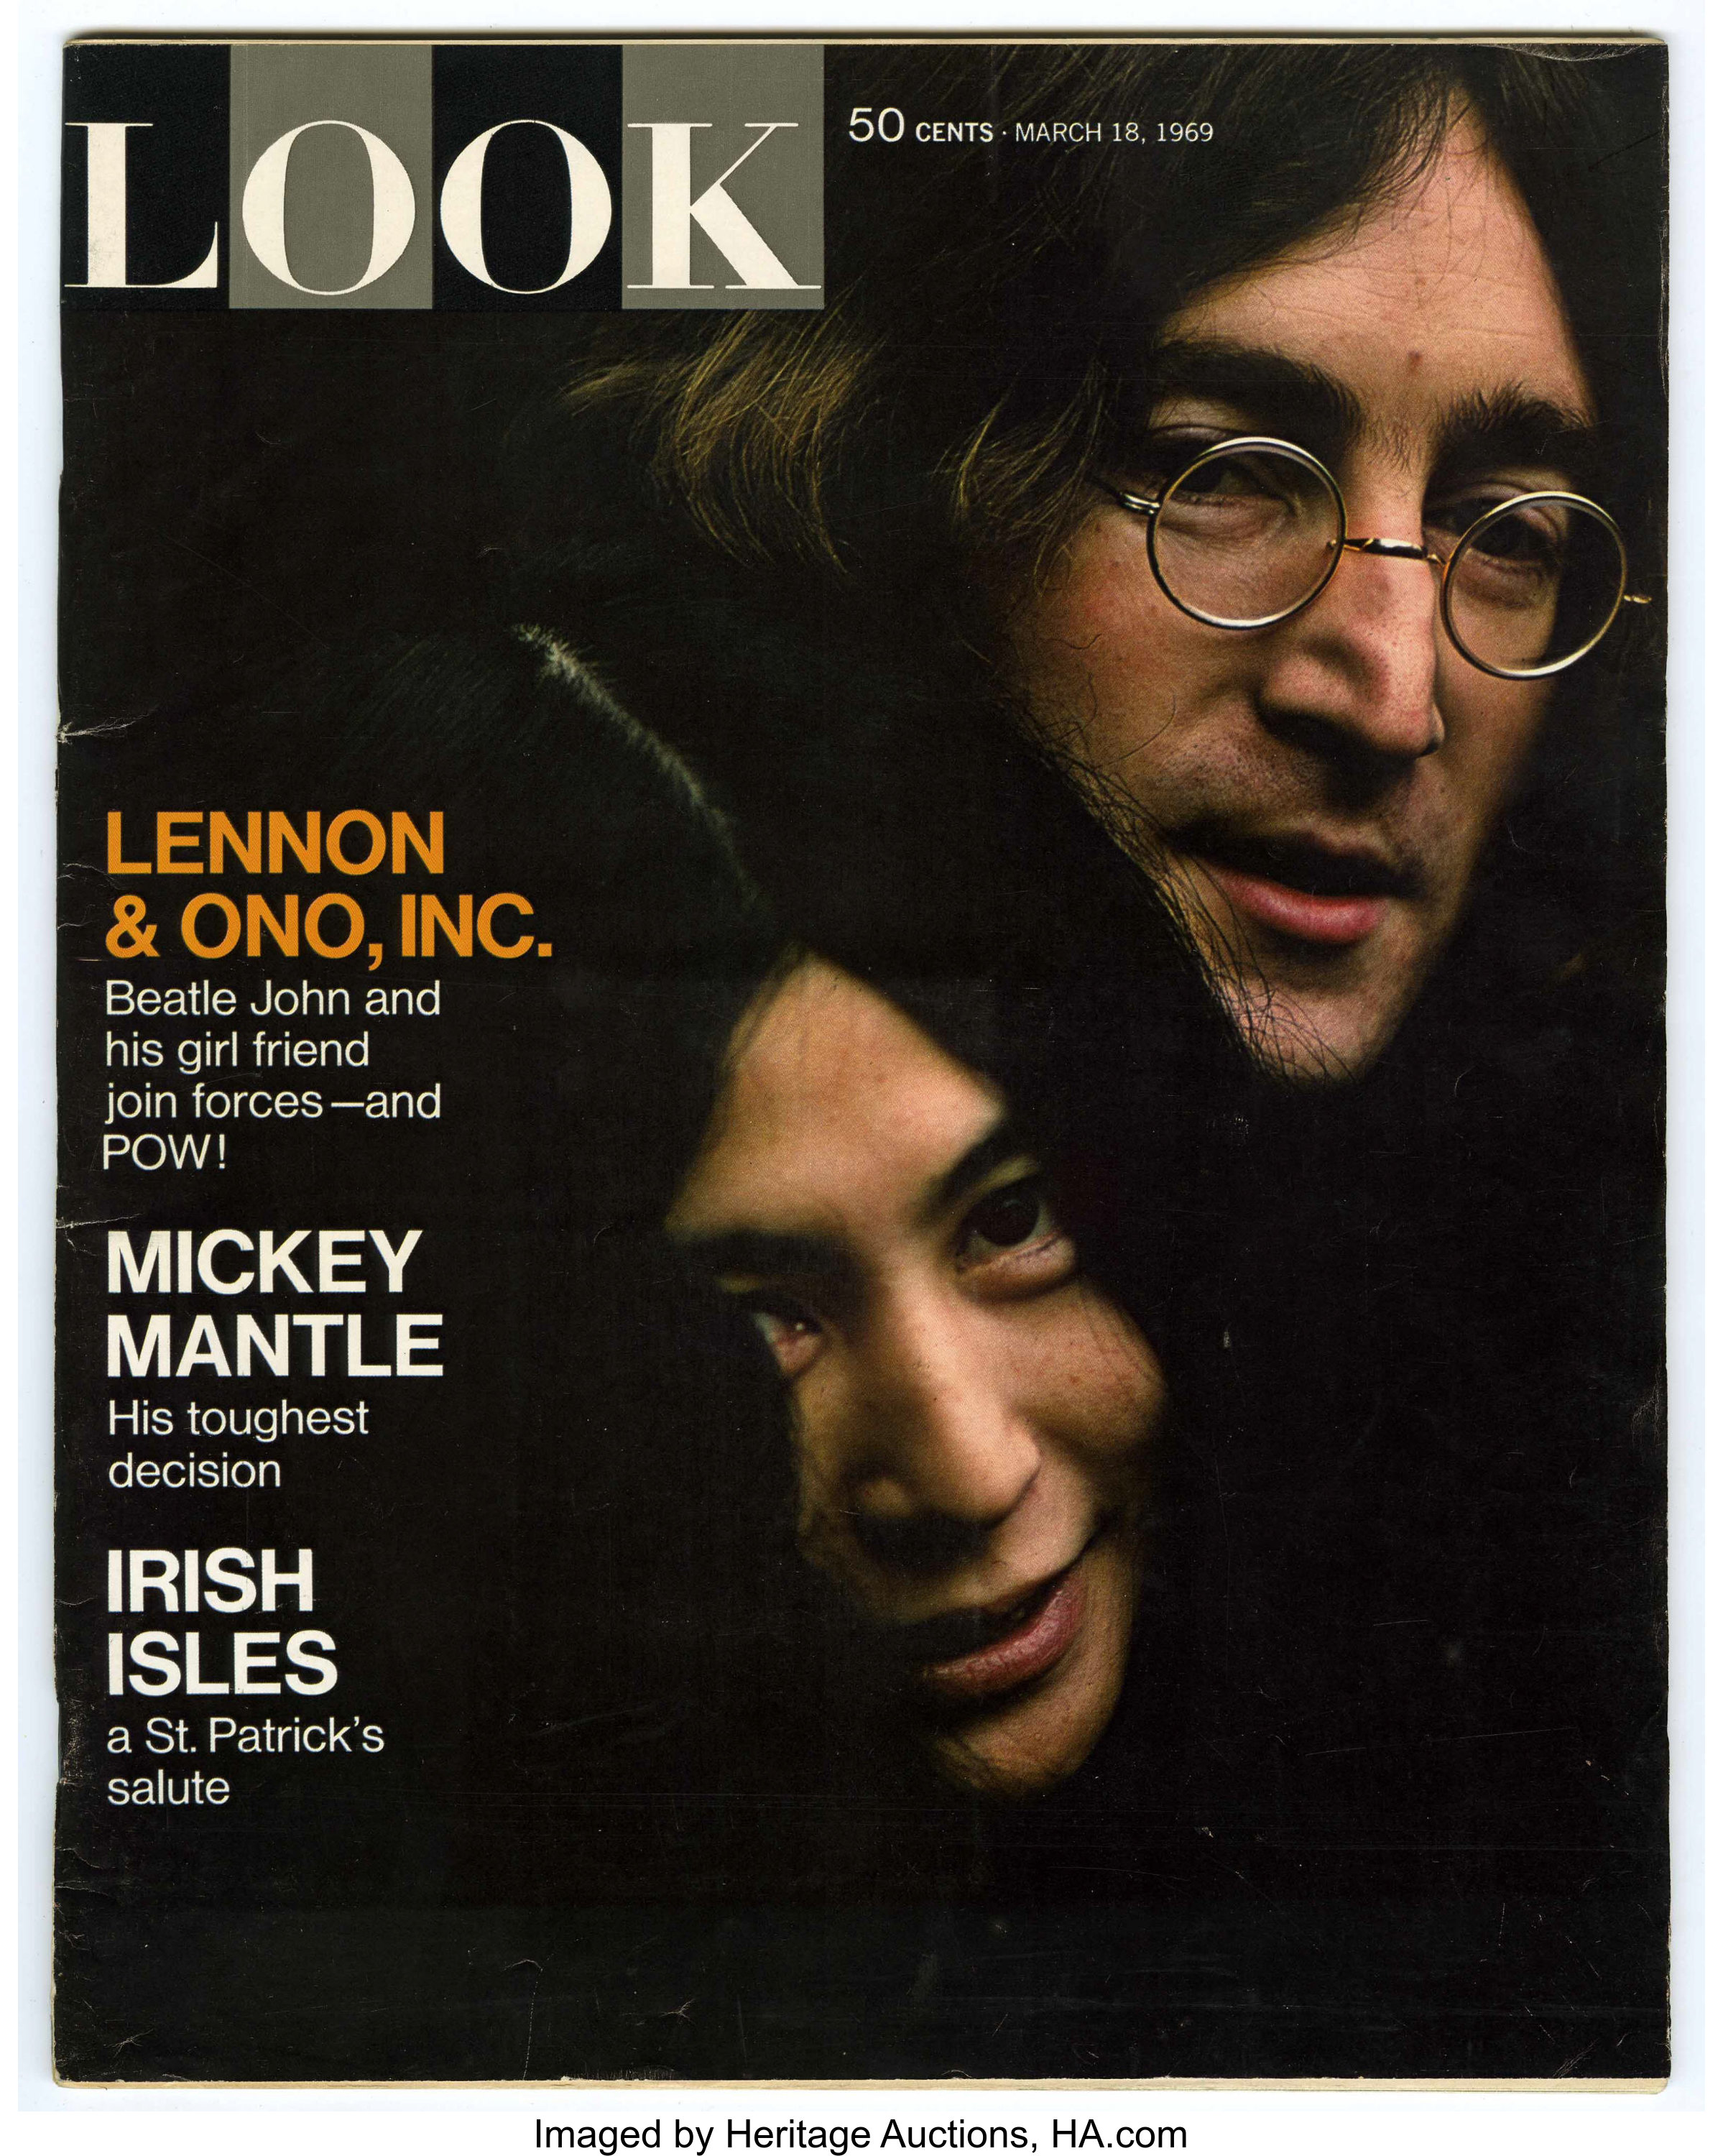 John Lennon And Yoko Ono Cover Look Magazine Cowles Lot 14750 Heritage Auctions